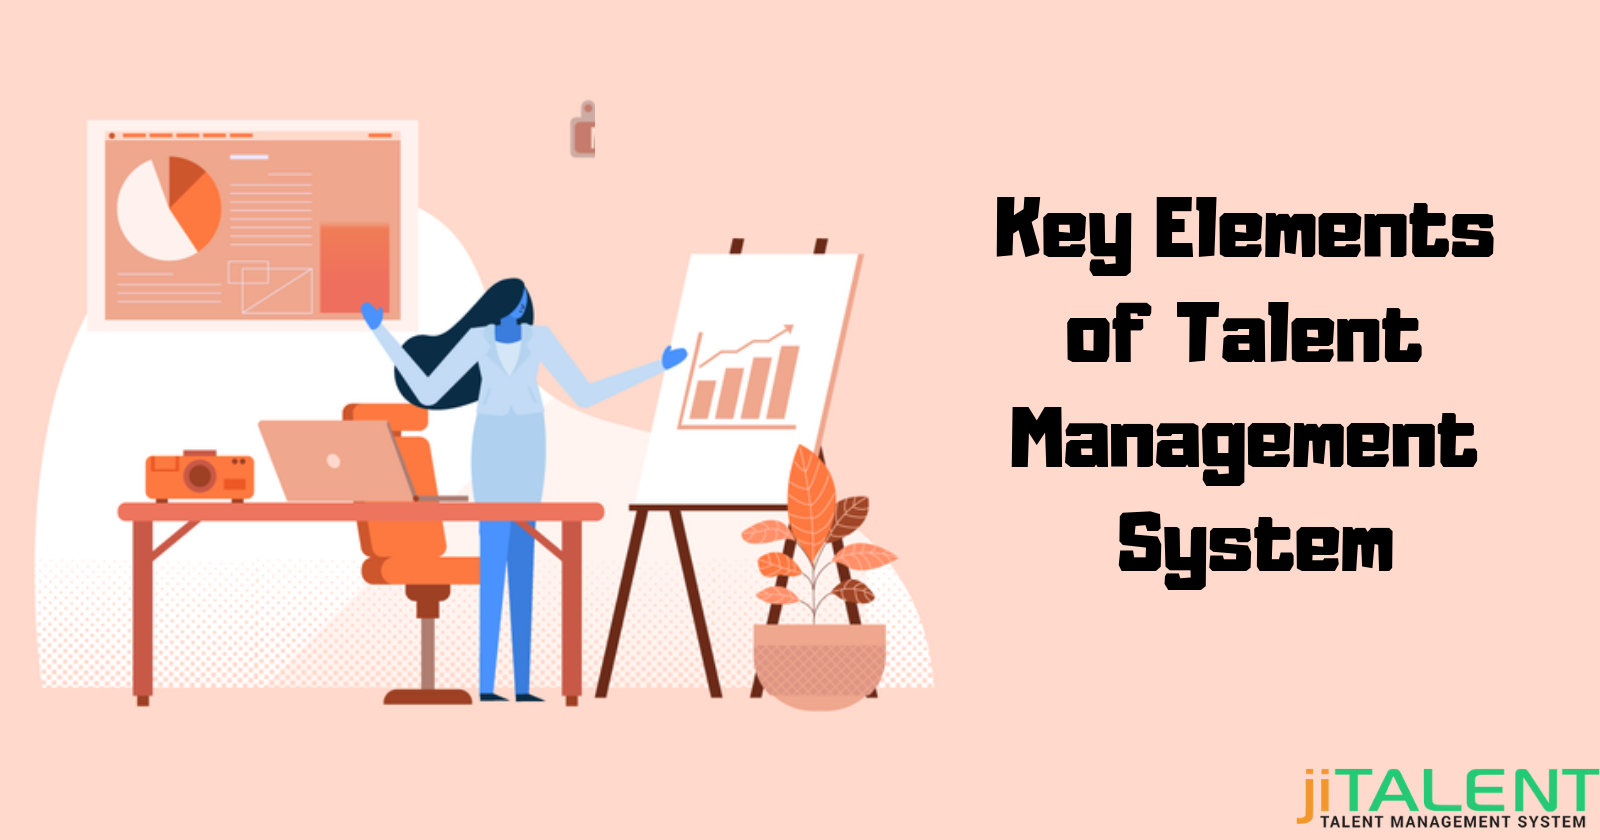 Key Elements of Talent Management System